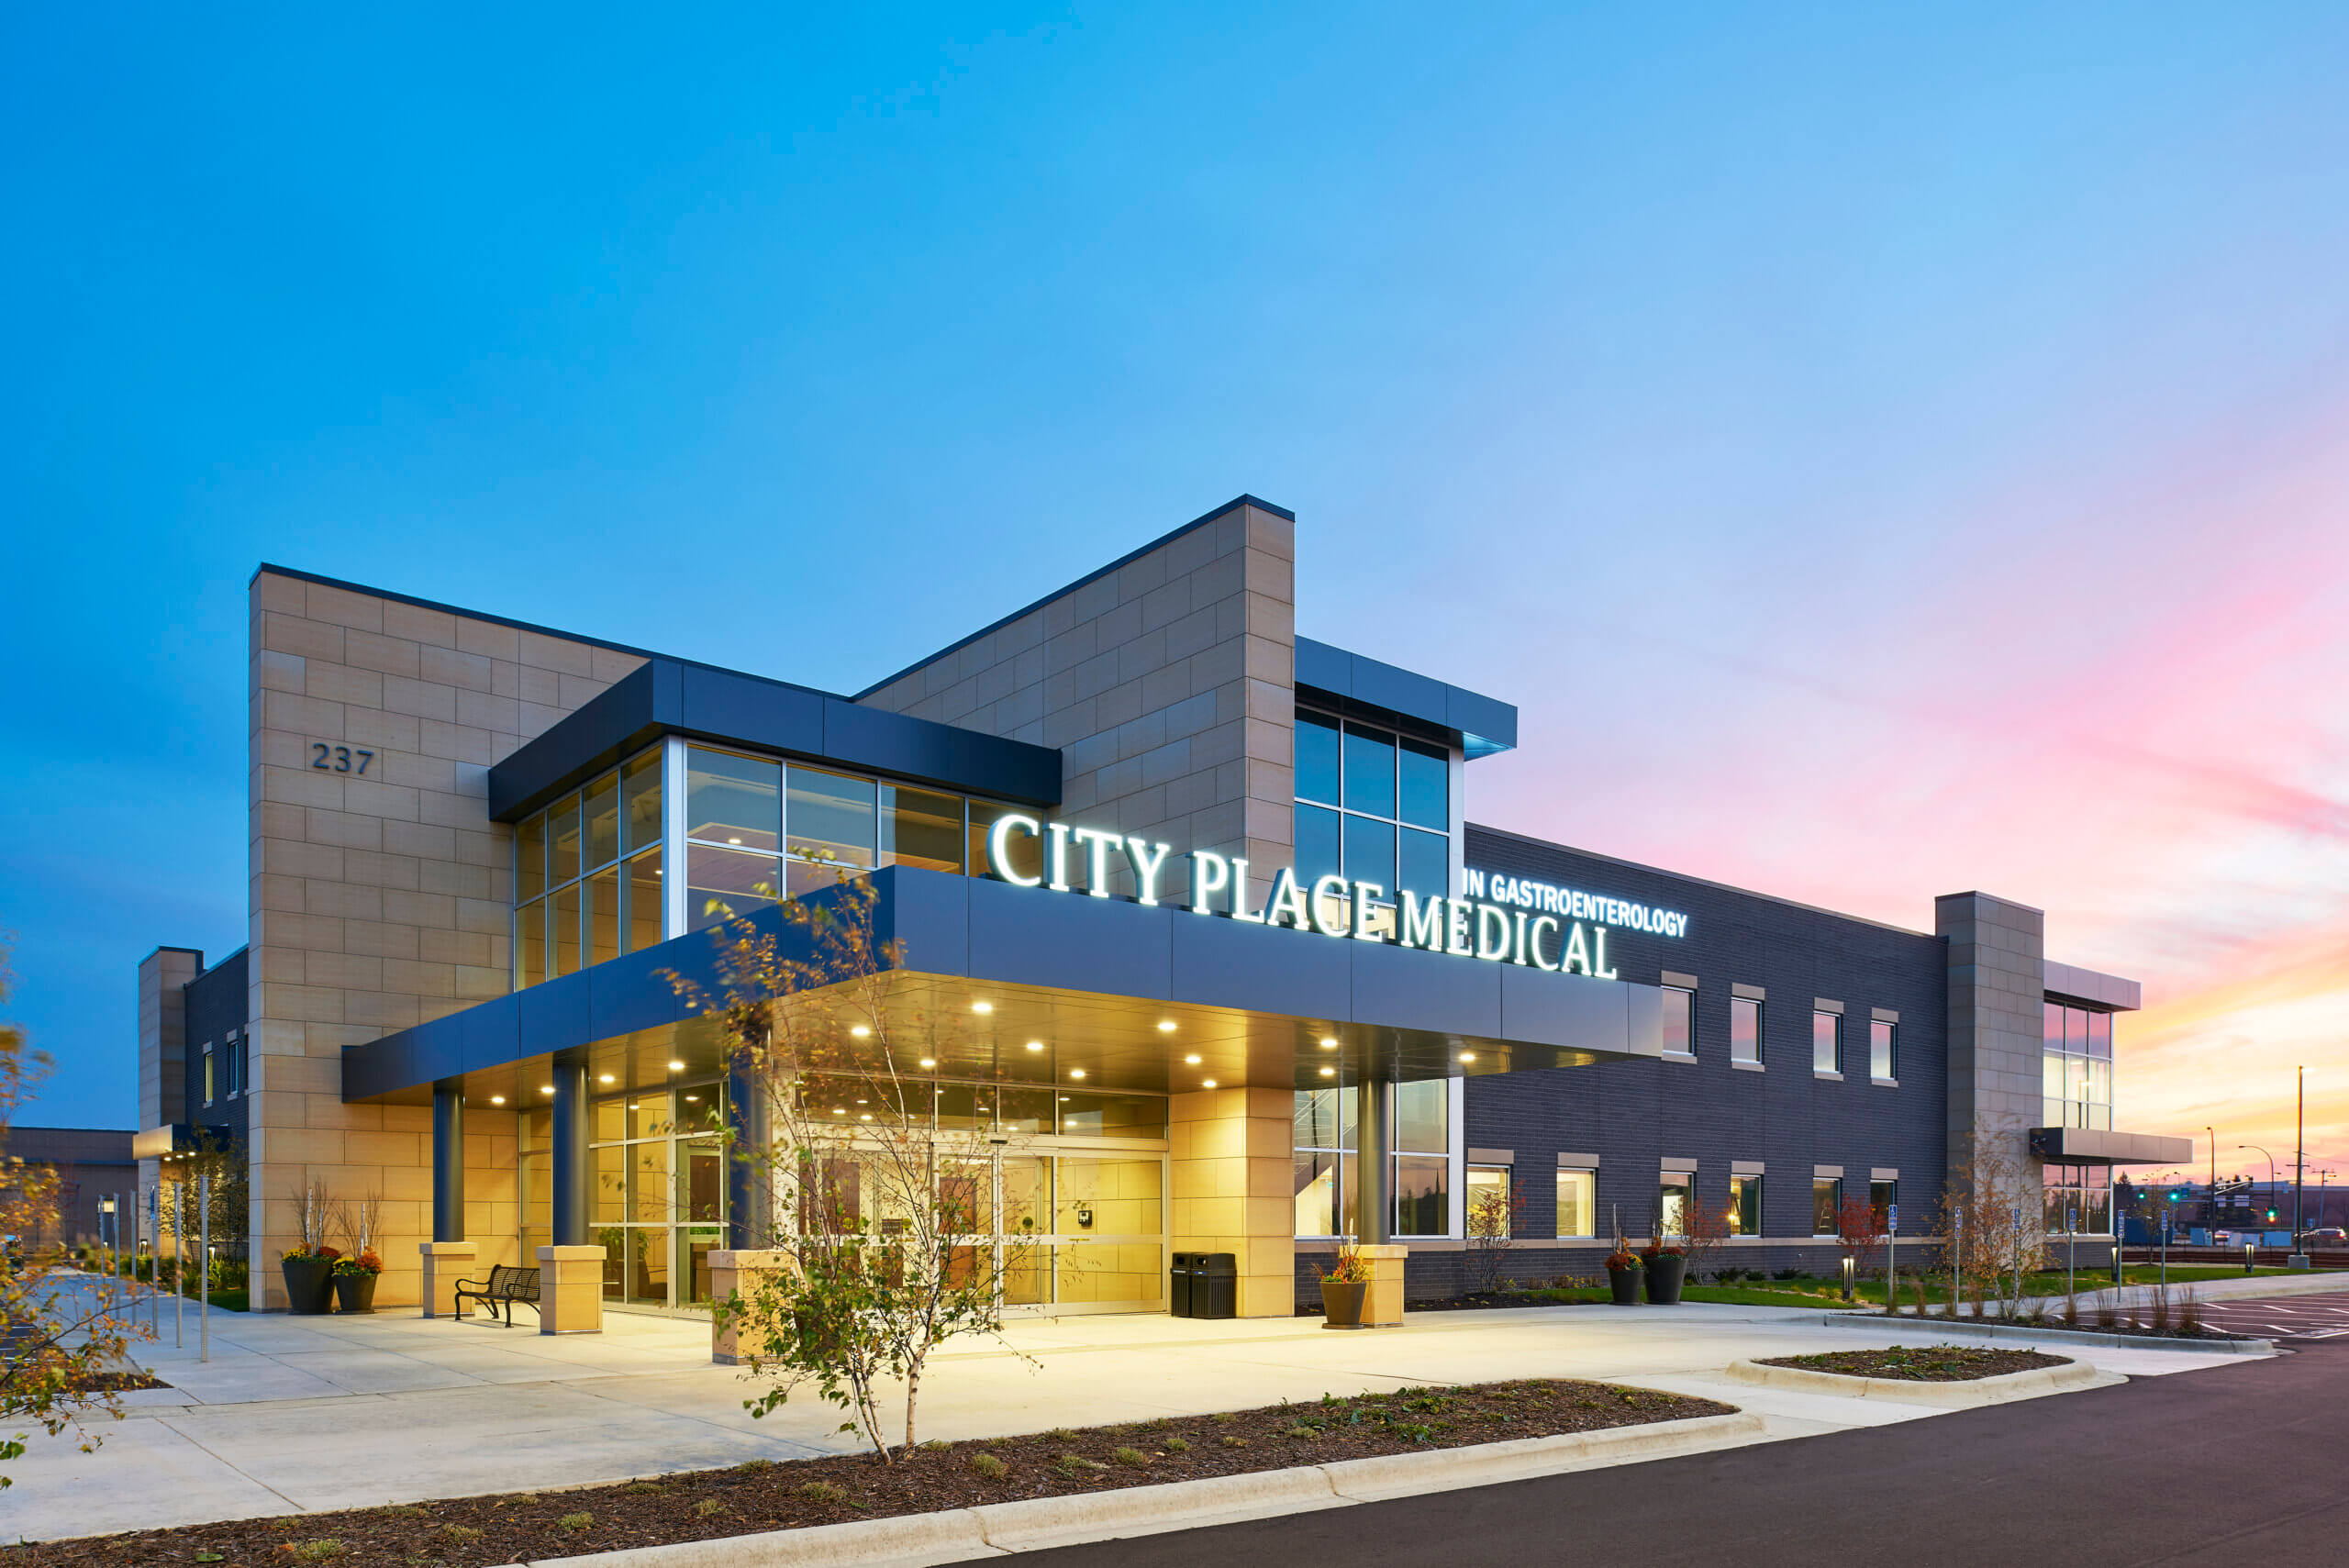 City Place Medical